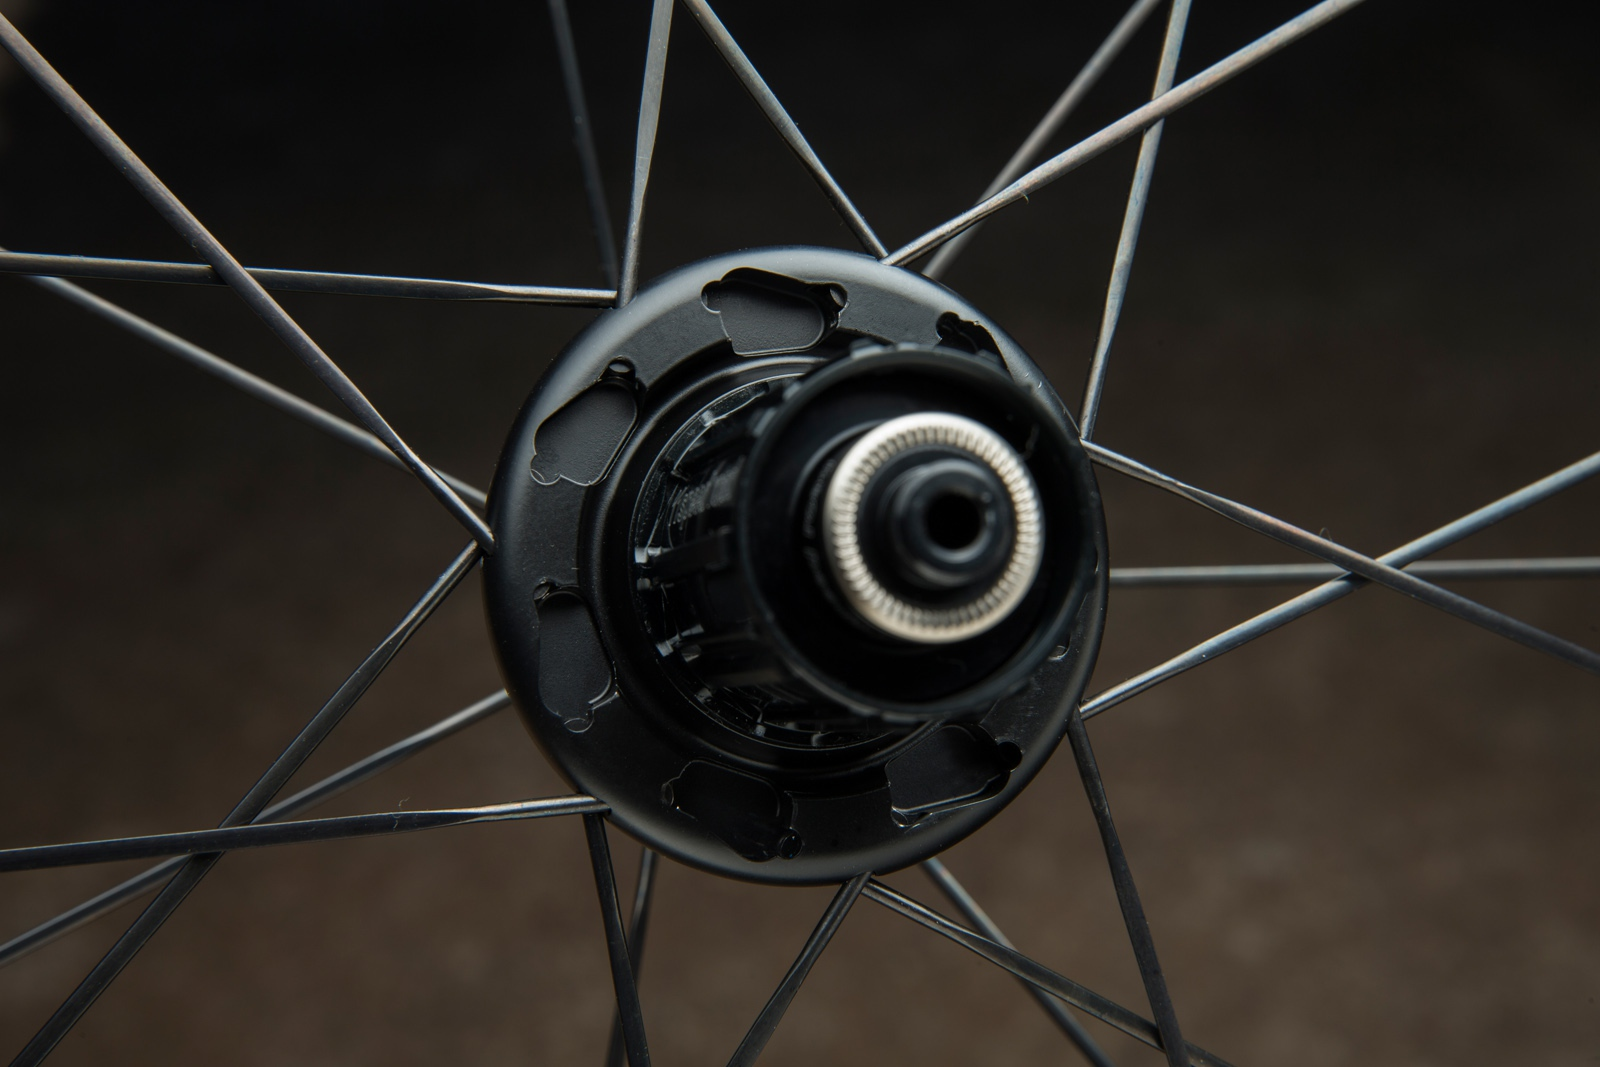 """With Giant's """"Dynamic Balanced Lacing"""" approach on their SLR wheels, opposing spokes have different levels of tension when the wheel is static. But when a rider applies pedaling force as the bike is being ridden, the spoke tensions balance out. Giant says that this improves a wheel's transmission stiffness, which increases efficiency. The rear wheel is  is built with 21 spokes: 14 on the drive side and 7 on the non-drive side."""